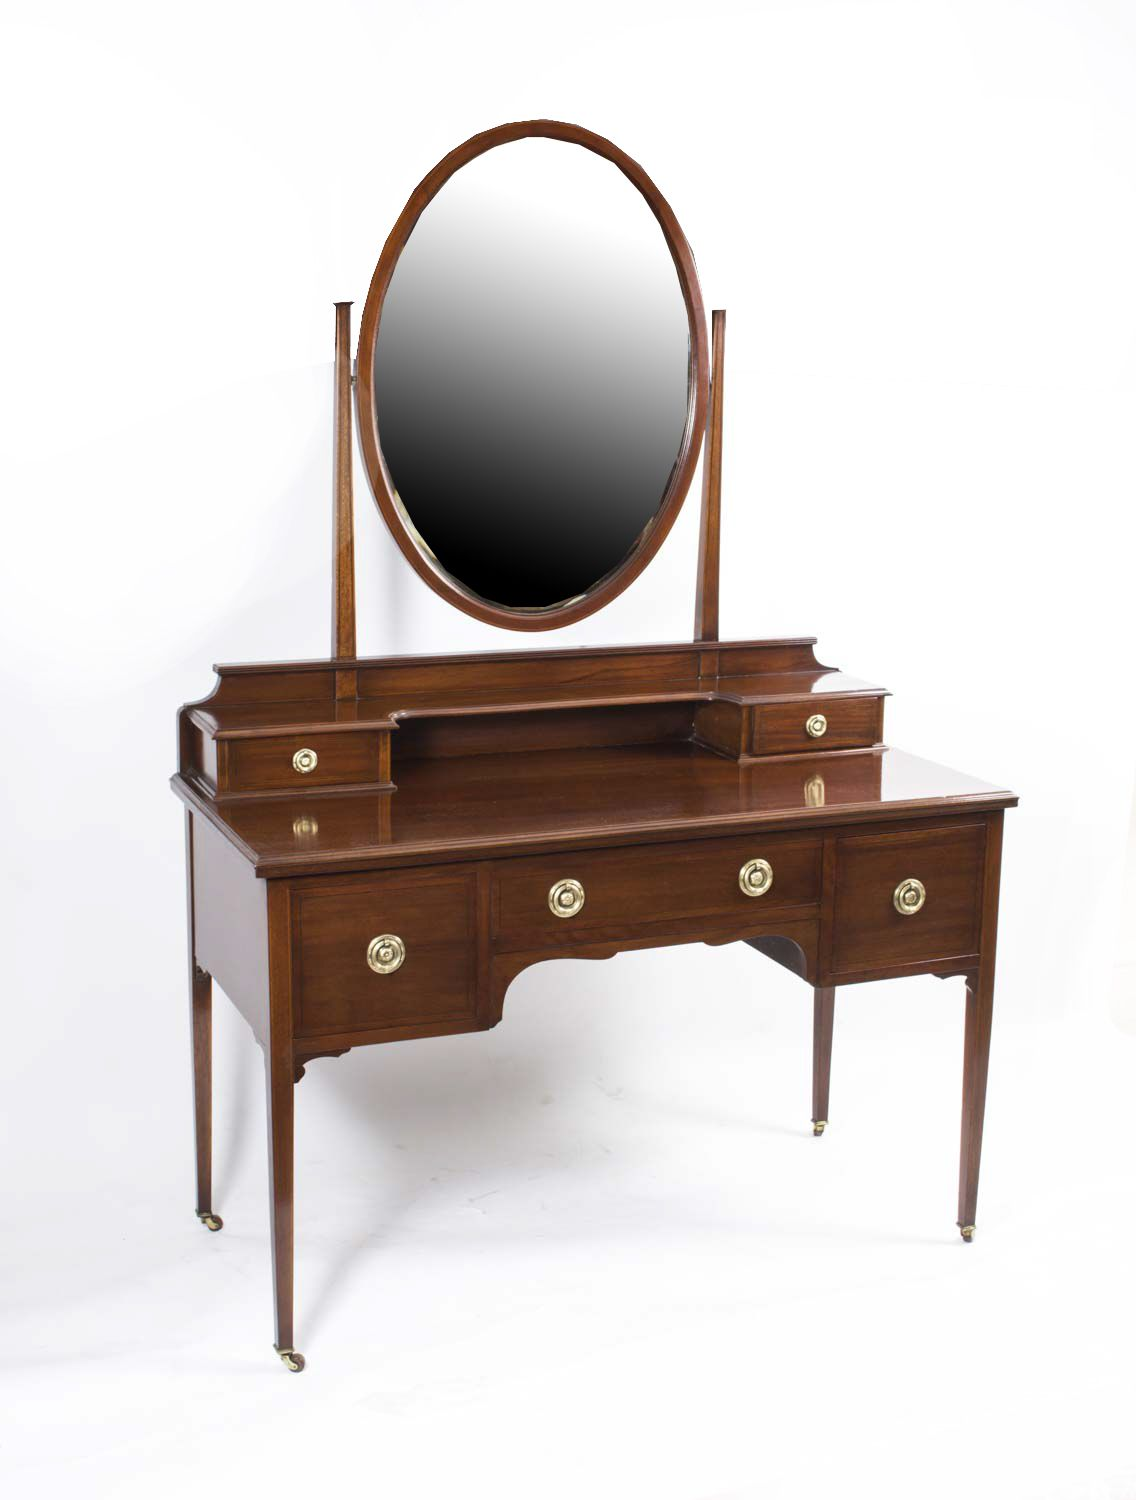 Dressing table with mirror a beautiful antique edwardian dressing table circa   dressing